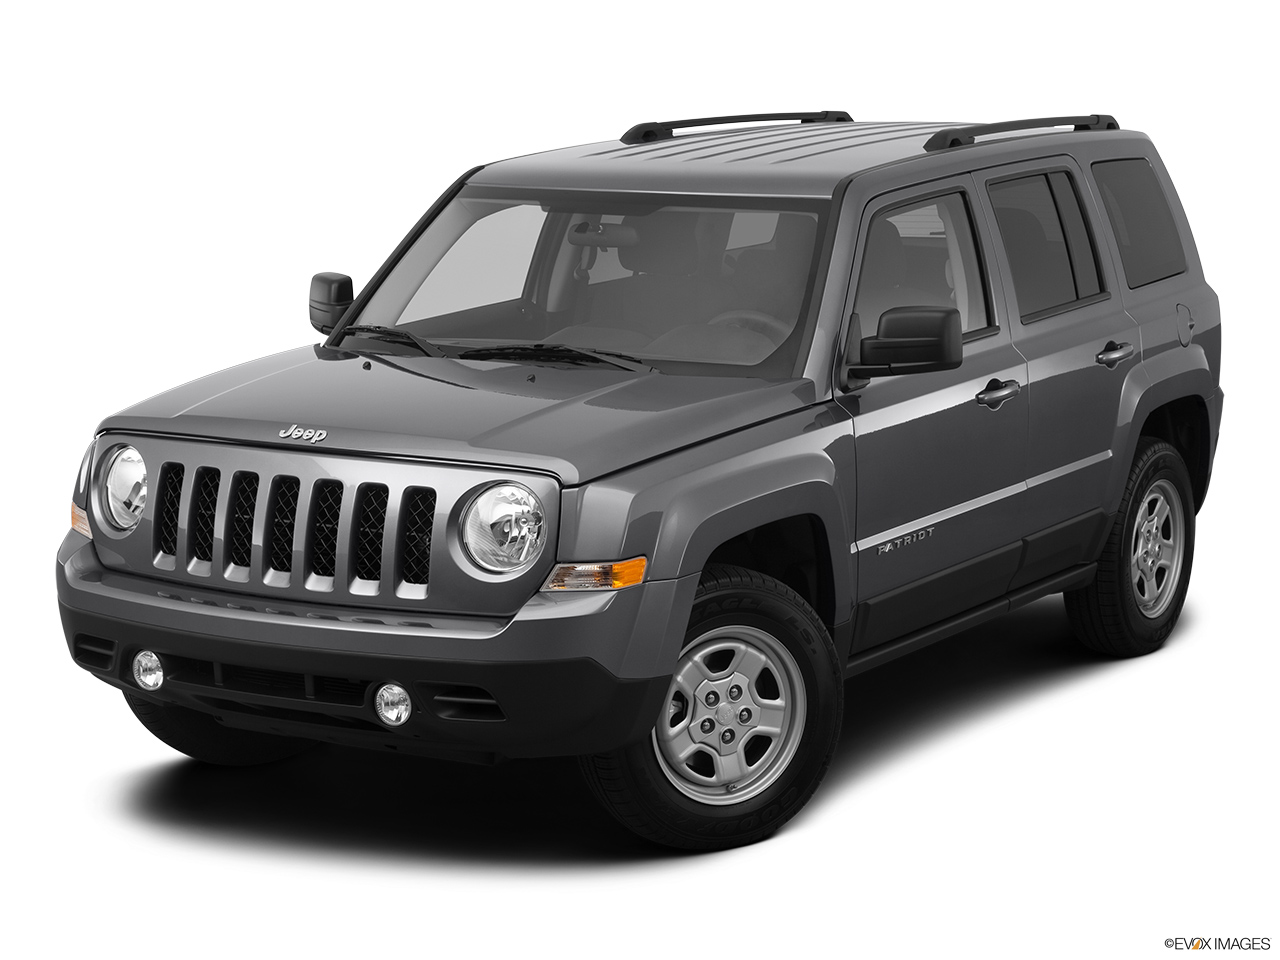 2012 Jeep Patriot Sport Front angle view.